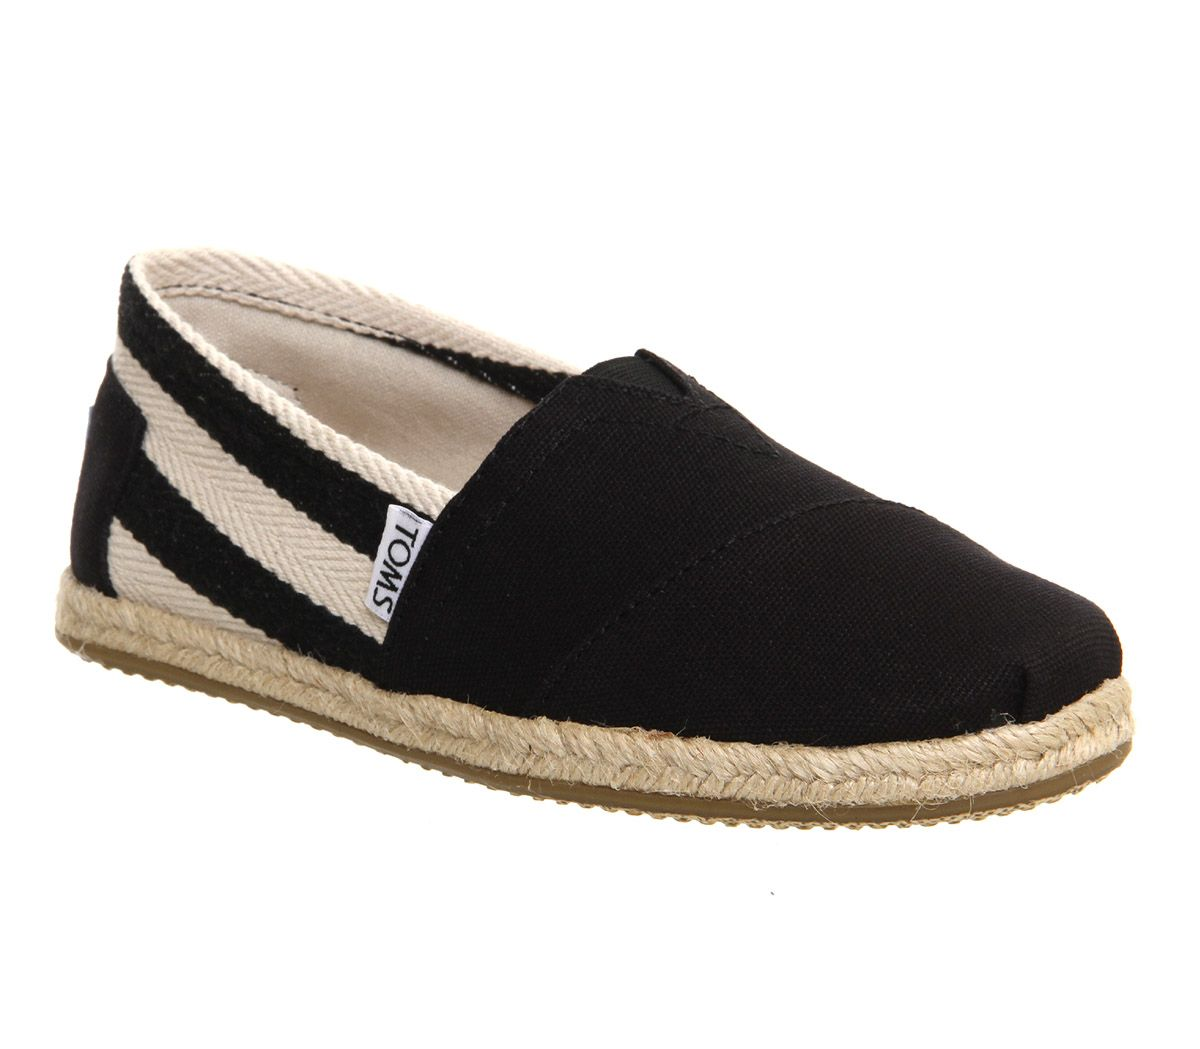 Toms University espadrilles Black